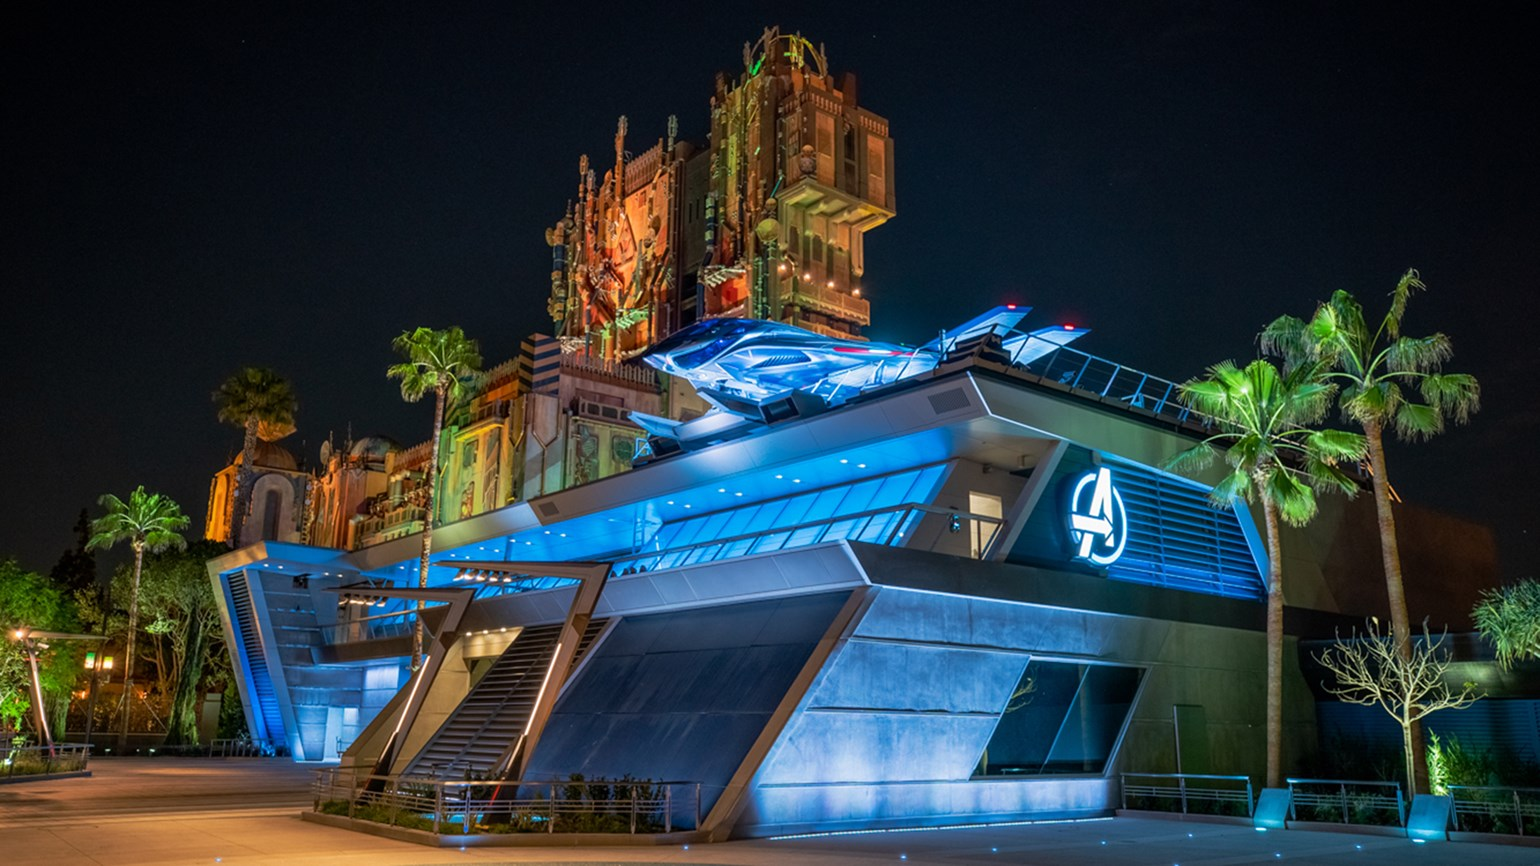 T0412AVENGERS1 credit: Disneyland Resort